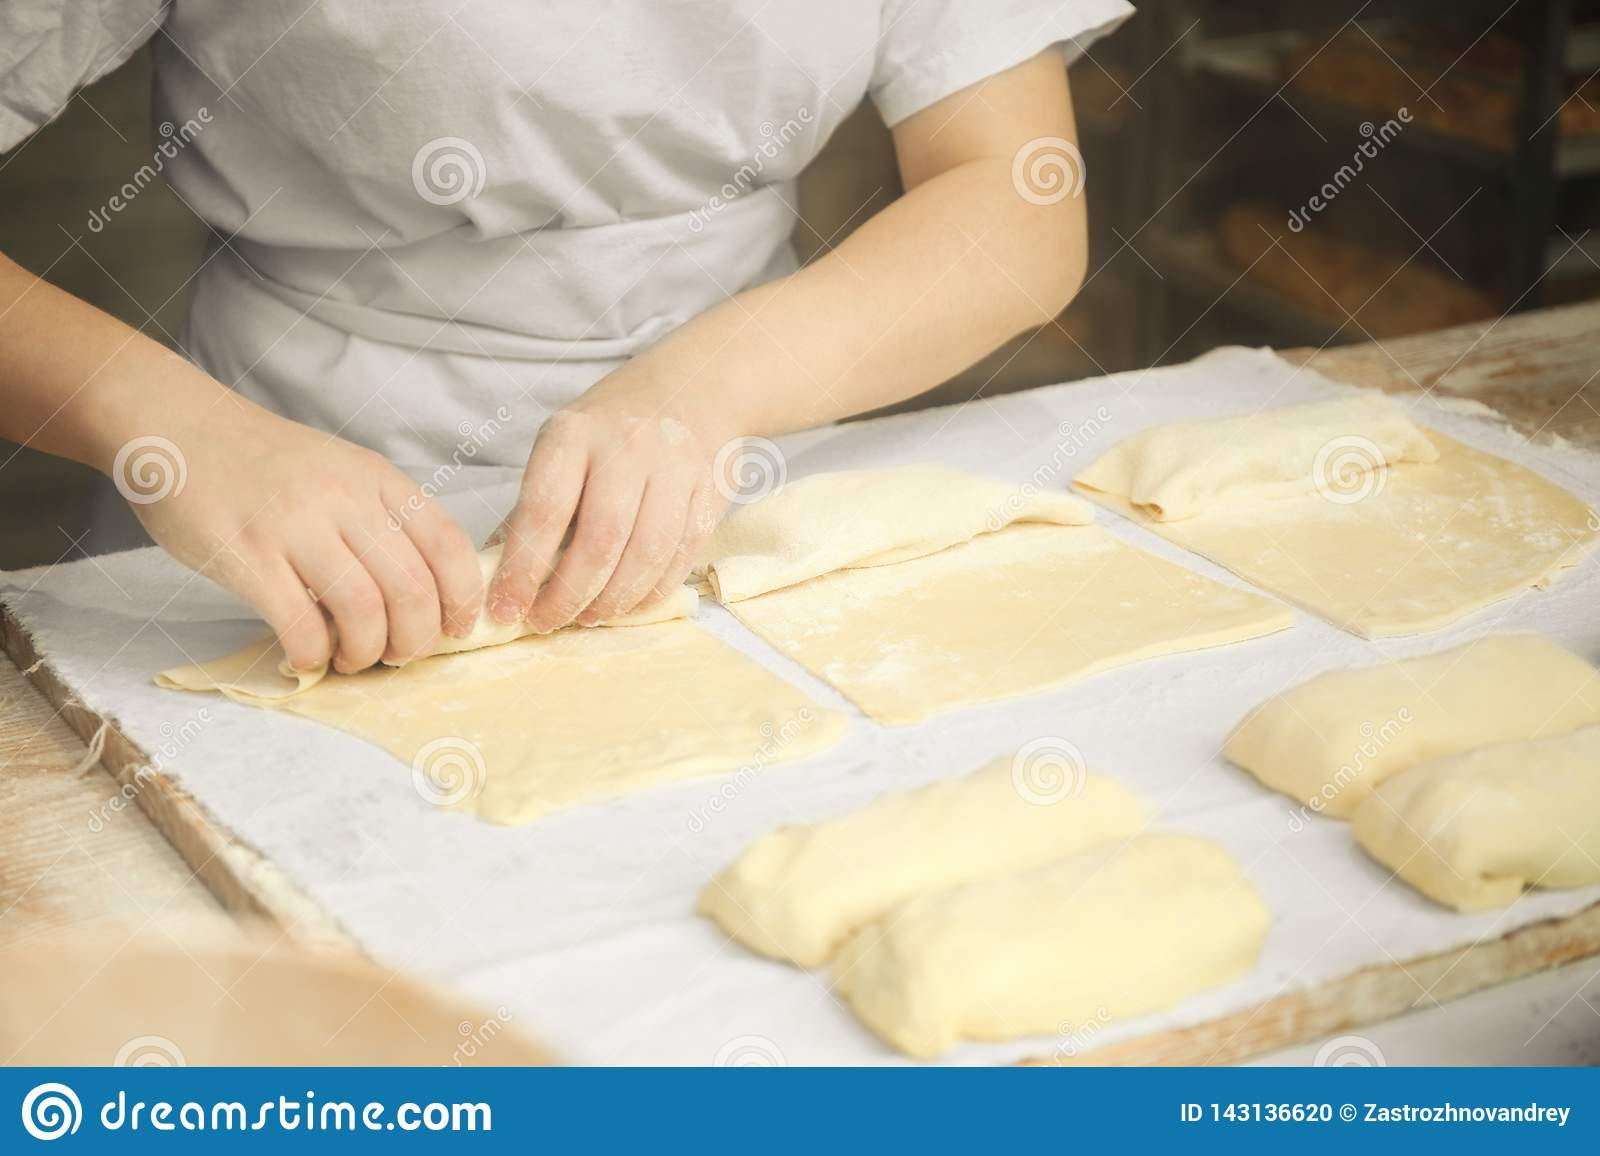 Fresh dough and flour, hands of the cook knead pizza or pie